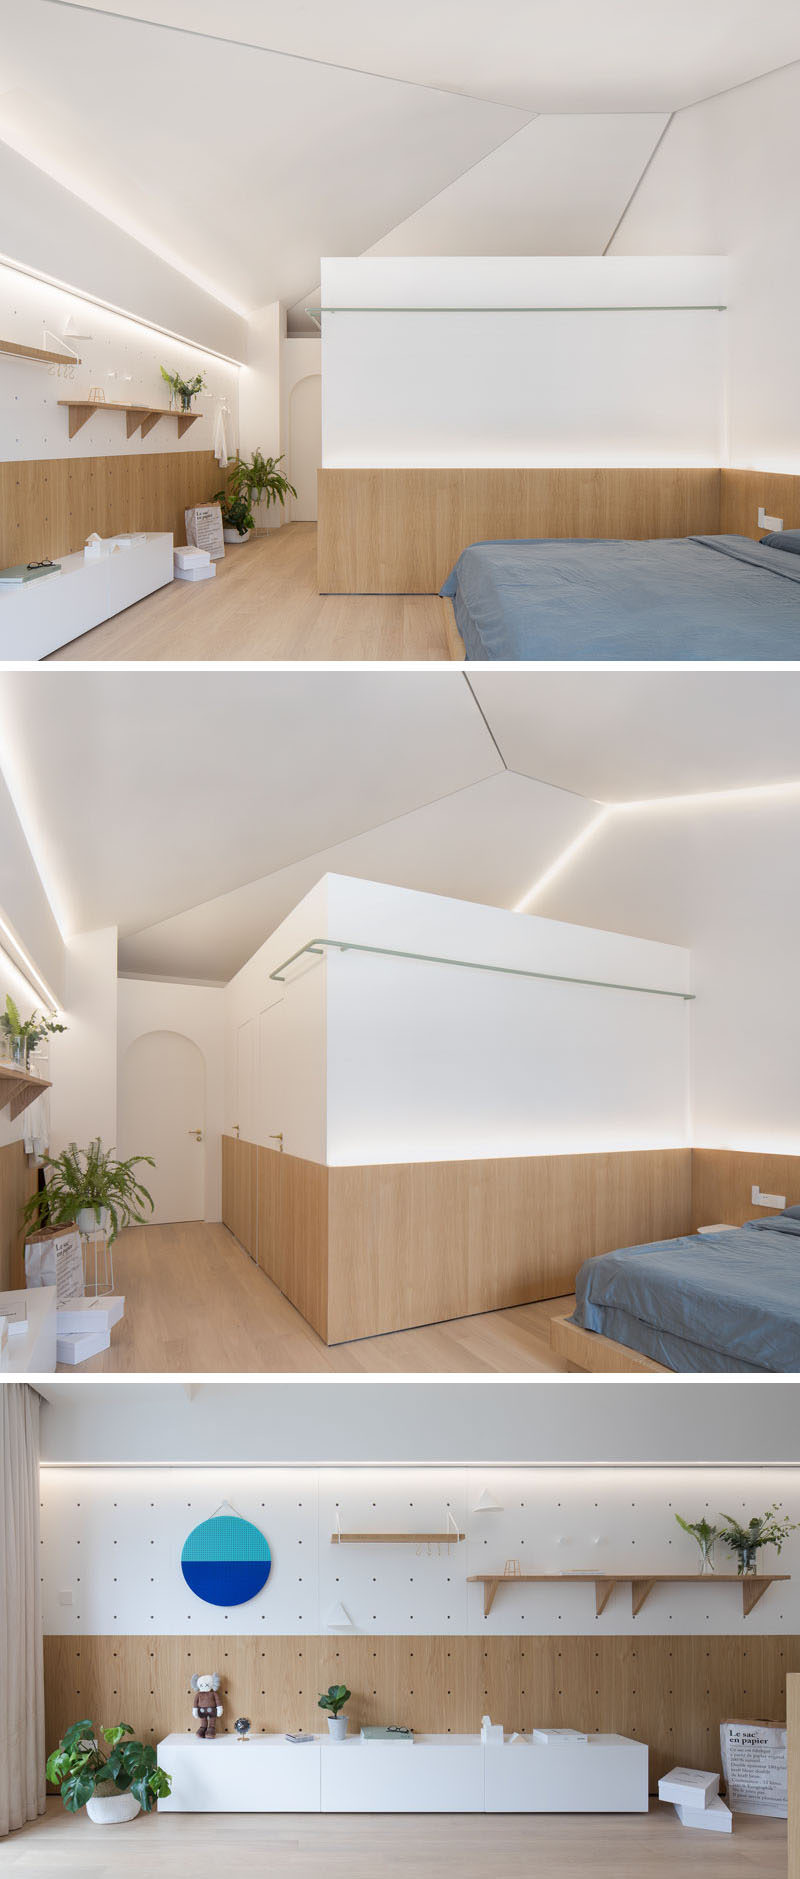 In this renovated master bedroom, the designers kept the sloped ceiling structure of the original building. Wood wraps around the lower part of the room, and on the wall opposite the bed, there's a display wall which can be changed up, much like the wall in the living room. #ModernBedroom #MasterBedroom #Shelving